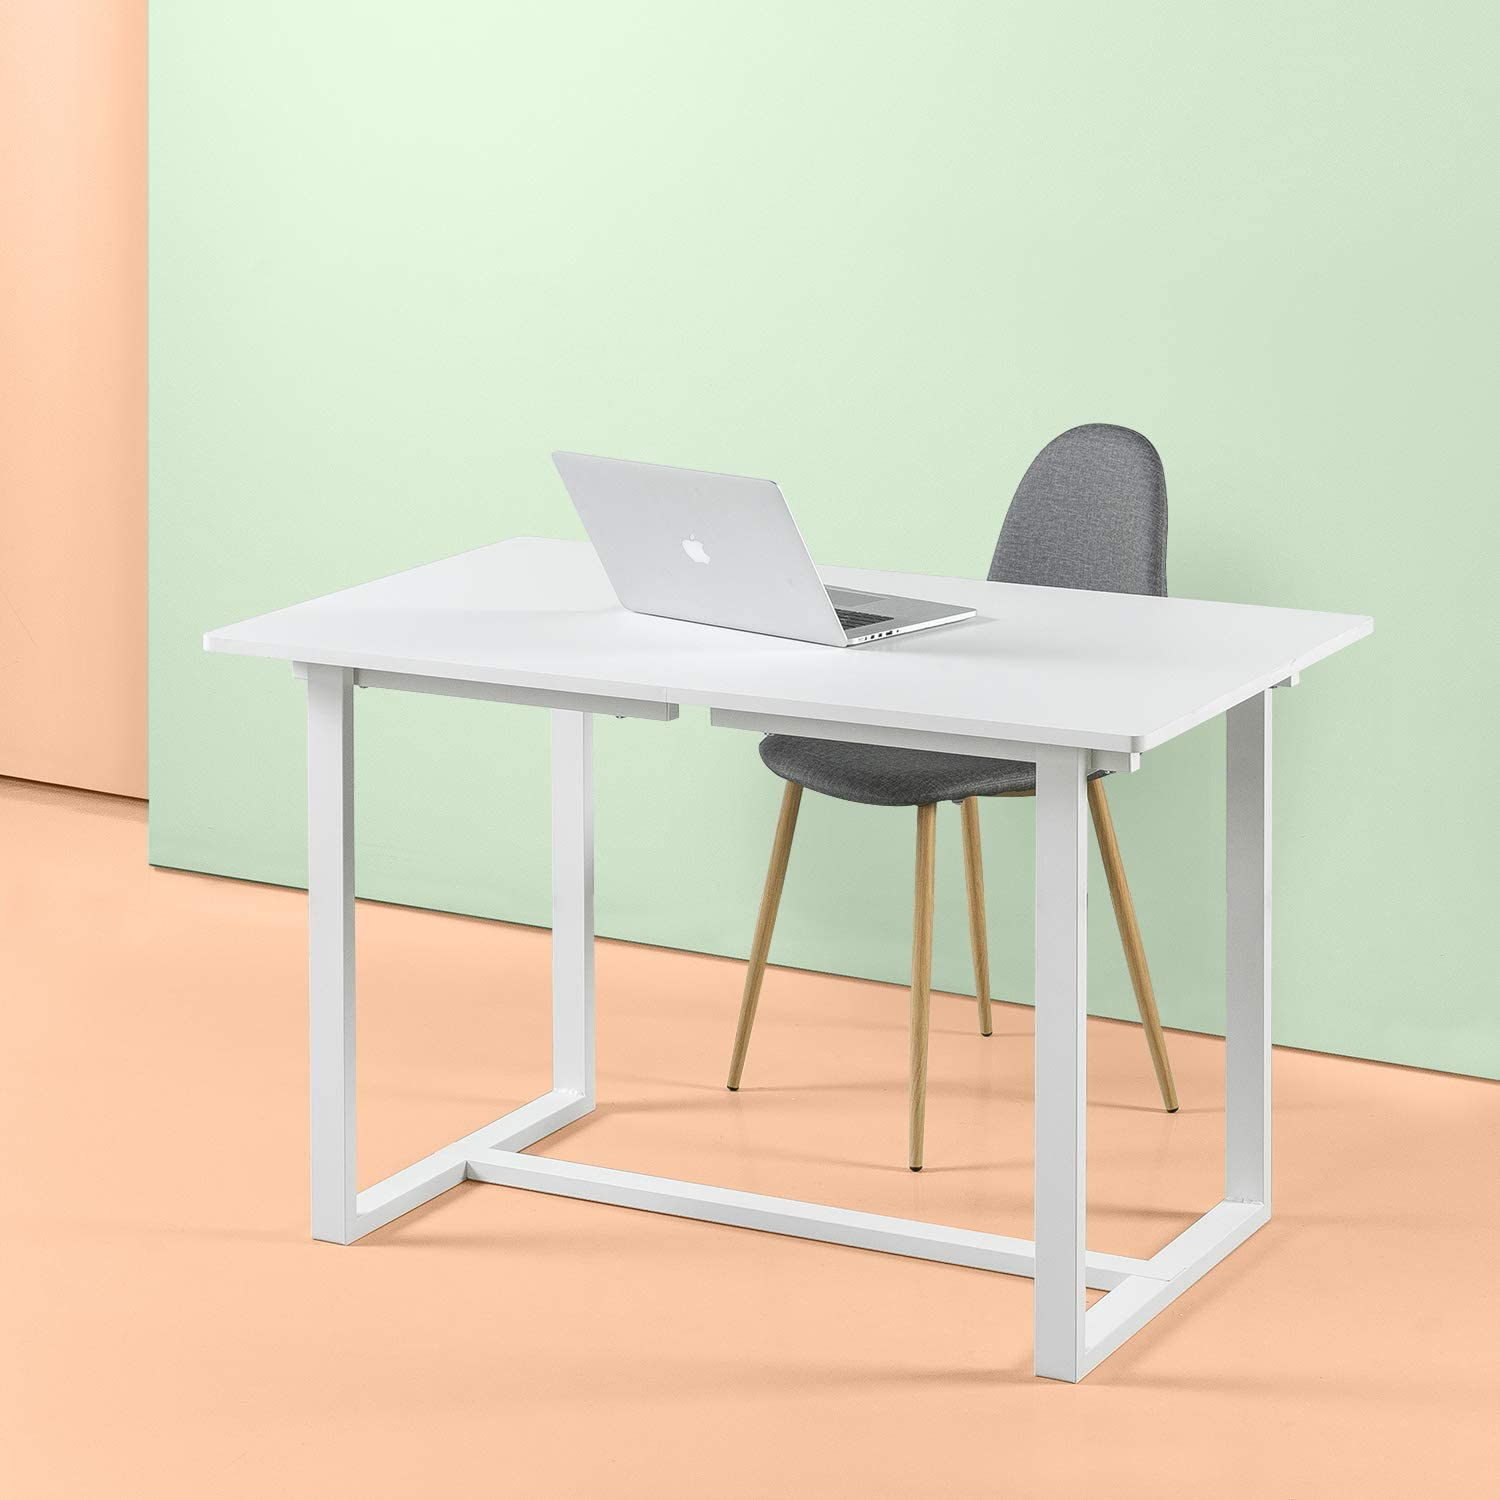 Zinus Rectangular Conference Room Table